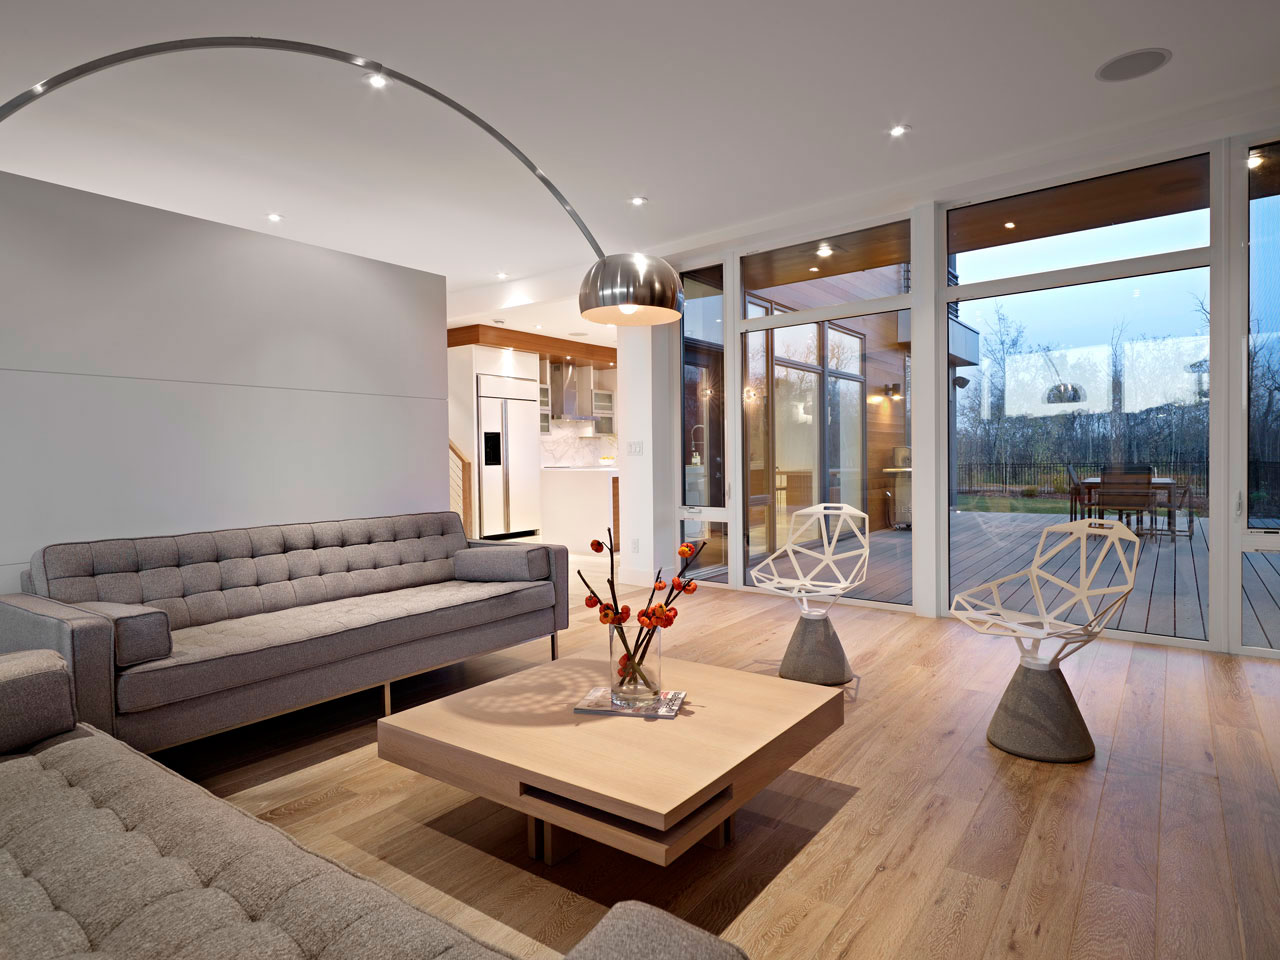 Sofas, Lighting, Coffee Table, Contemporary Home in Edmonton, Canada